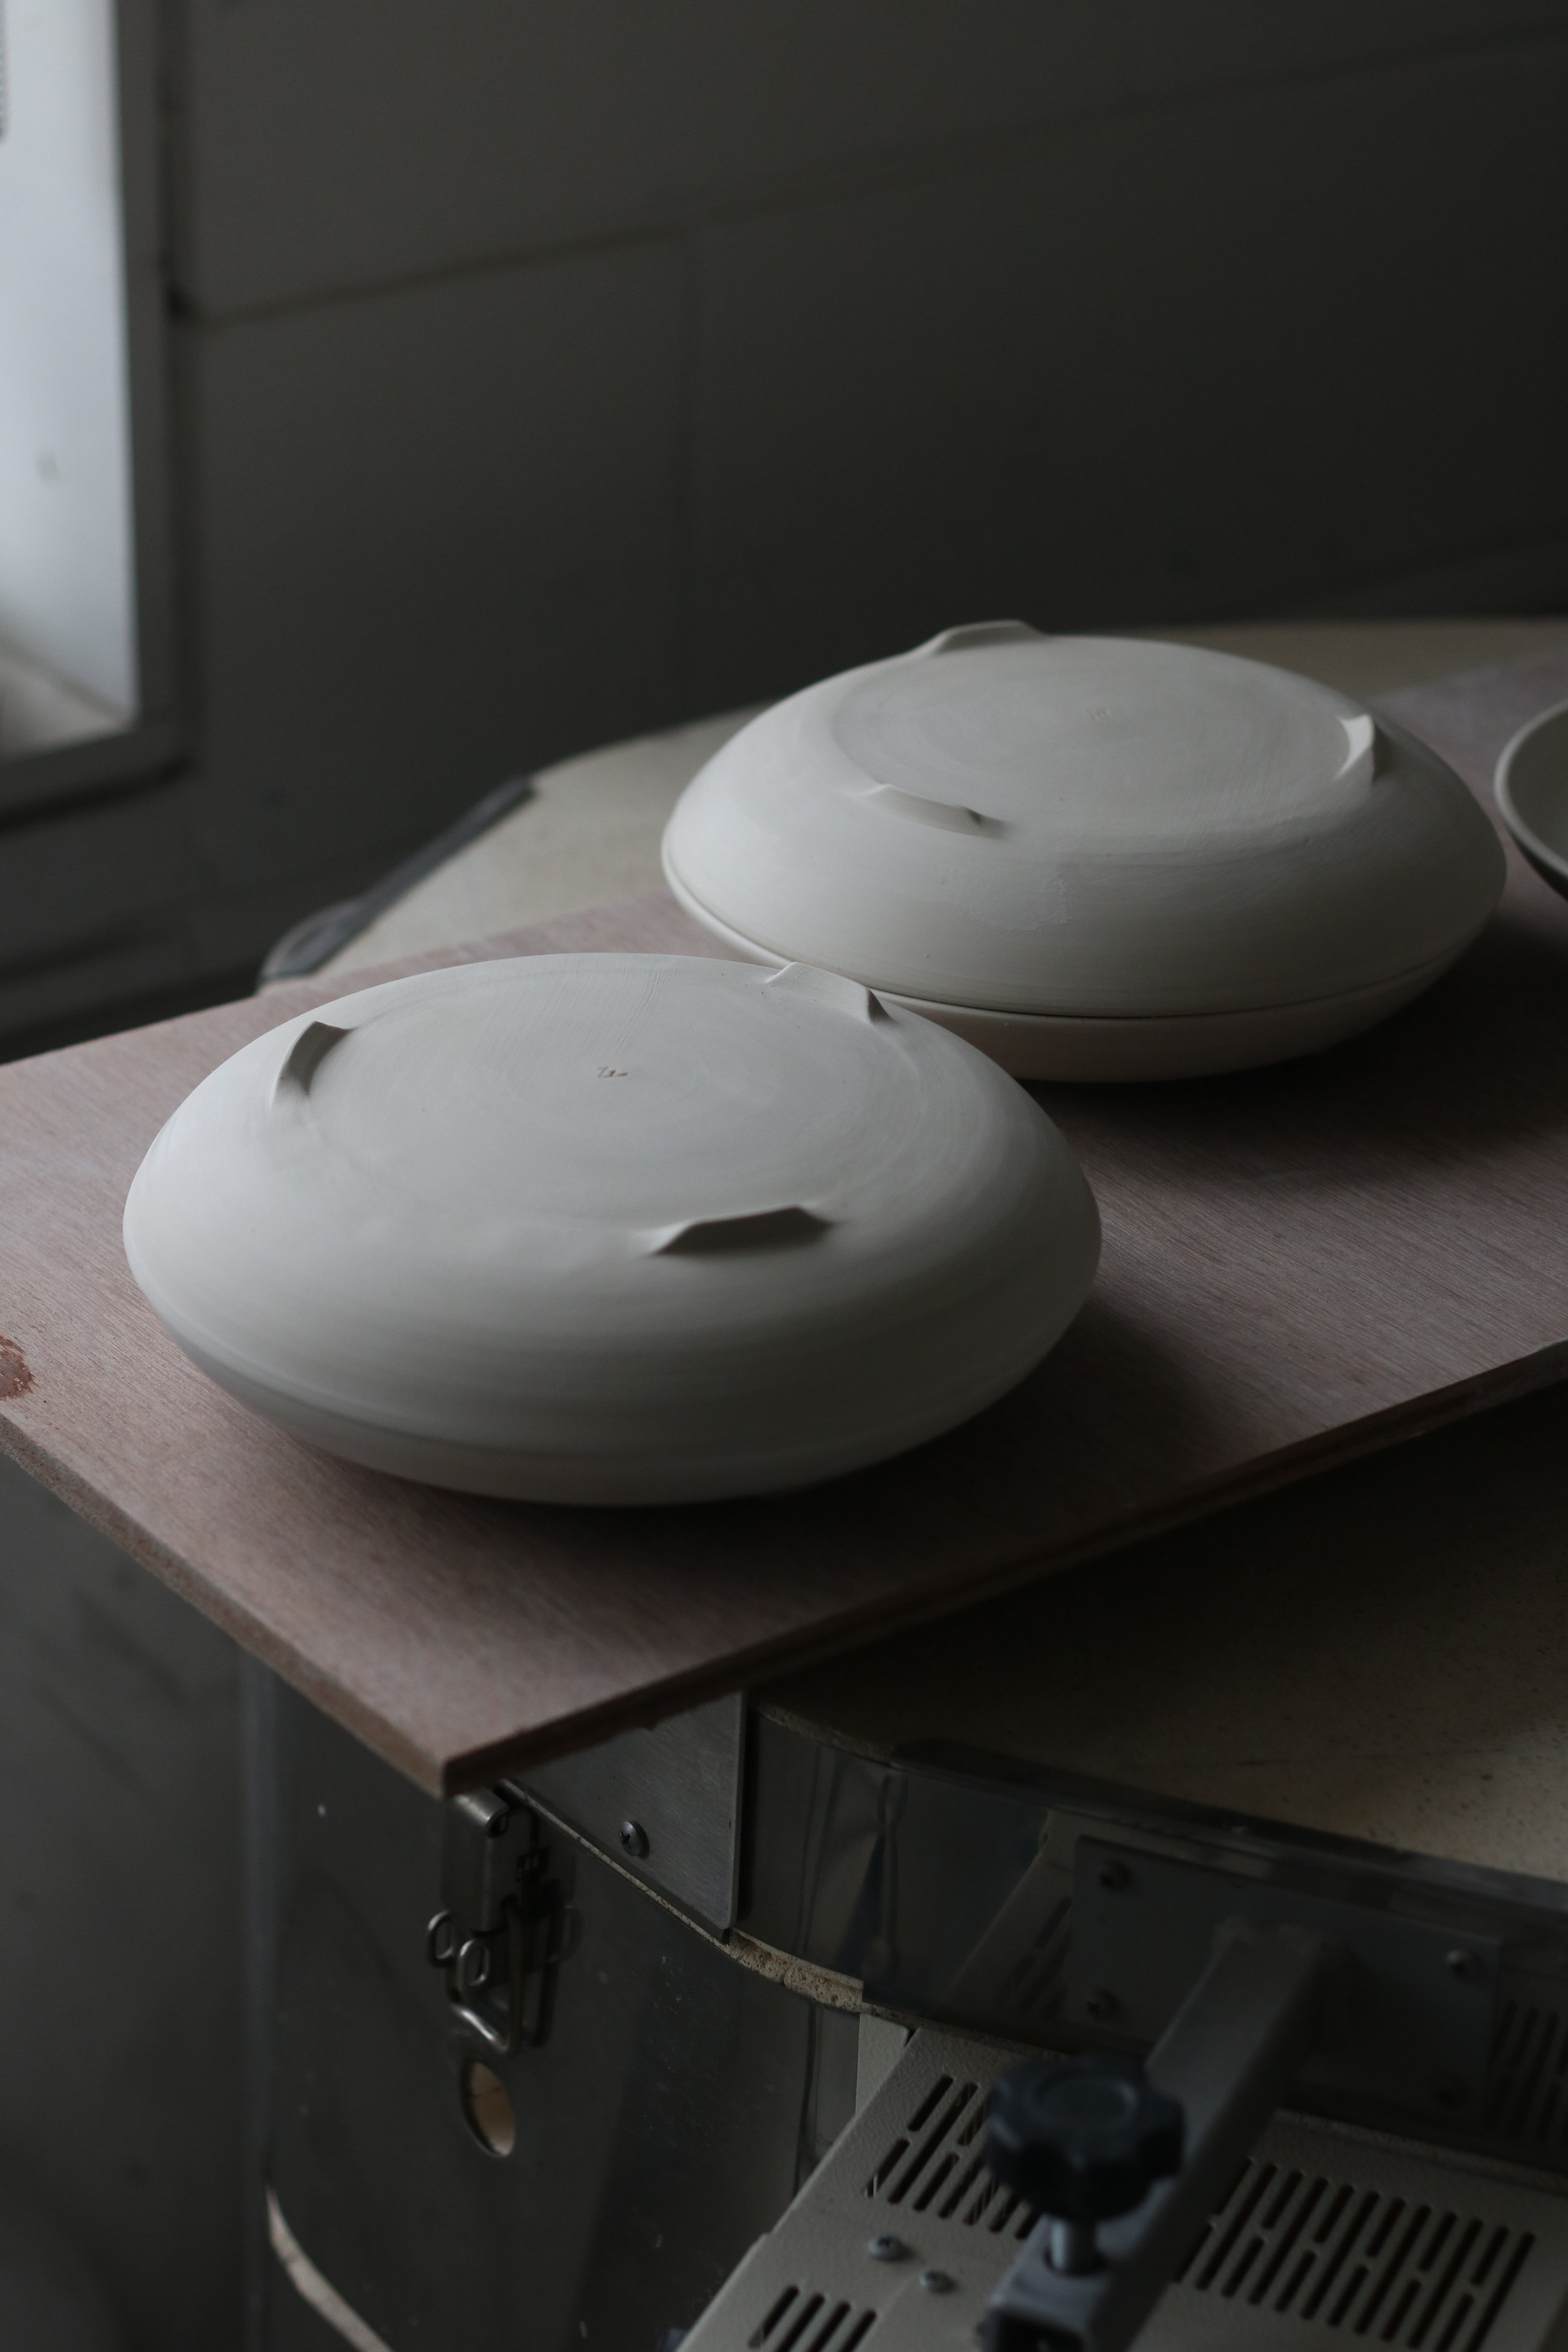 Plates at leather-hard stage, before being bisque fired